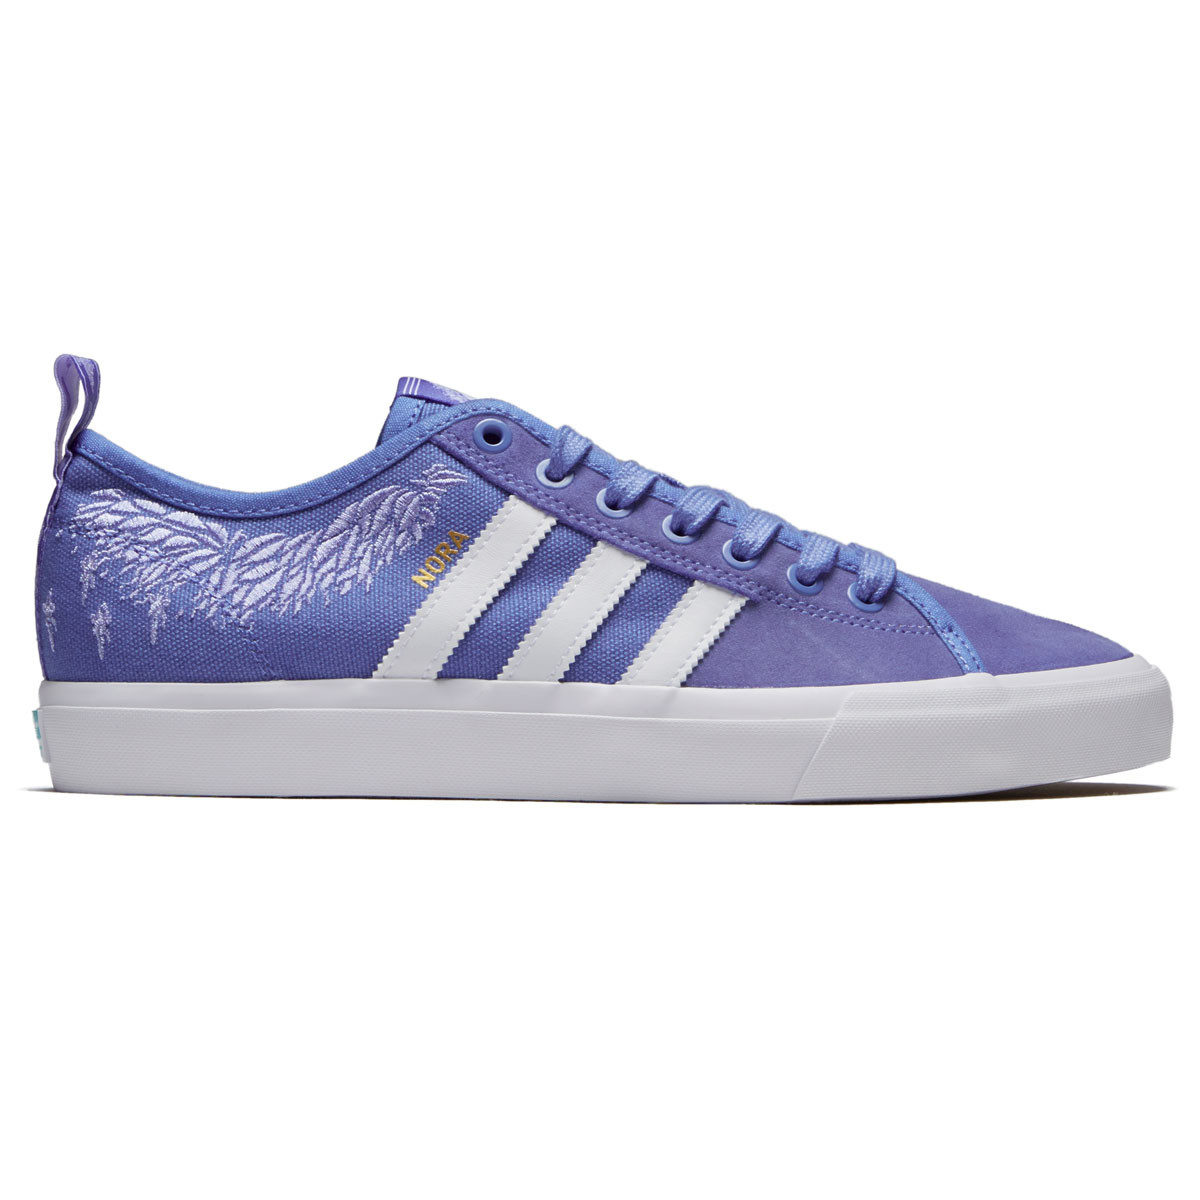 Adidas Matchcourt Shoes herr